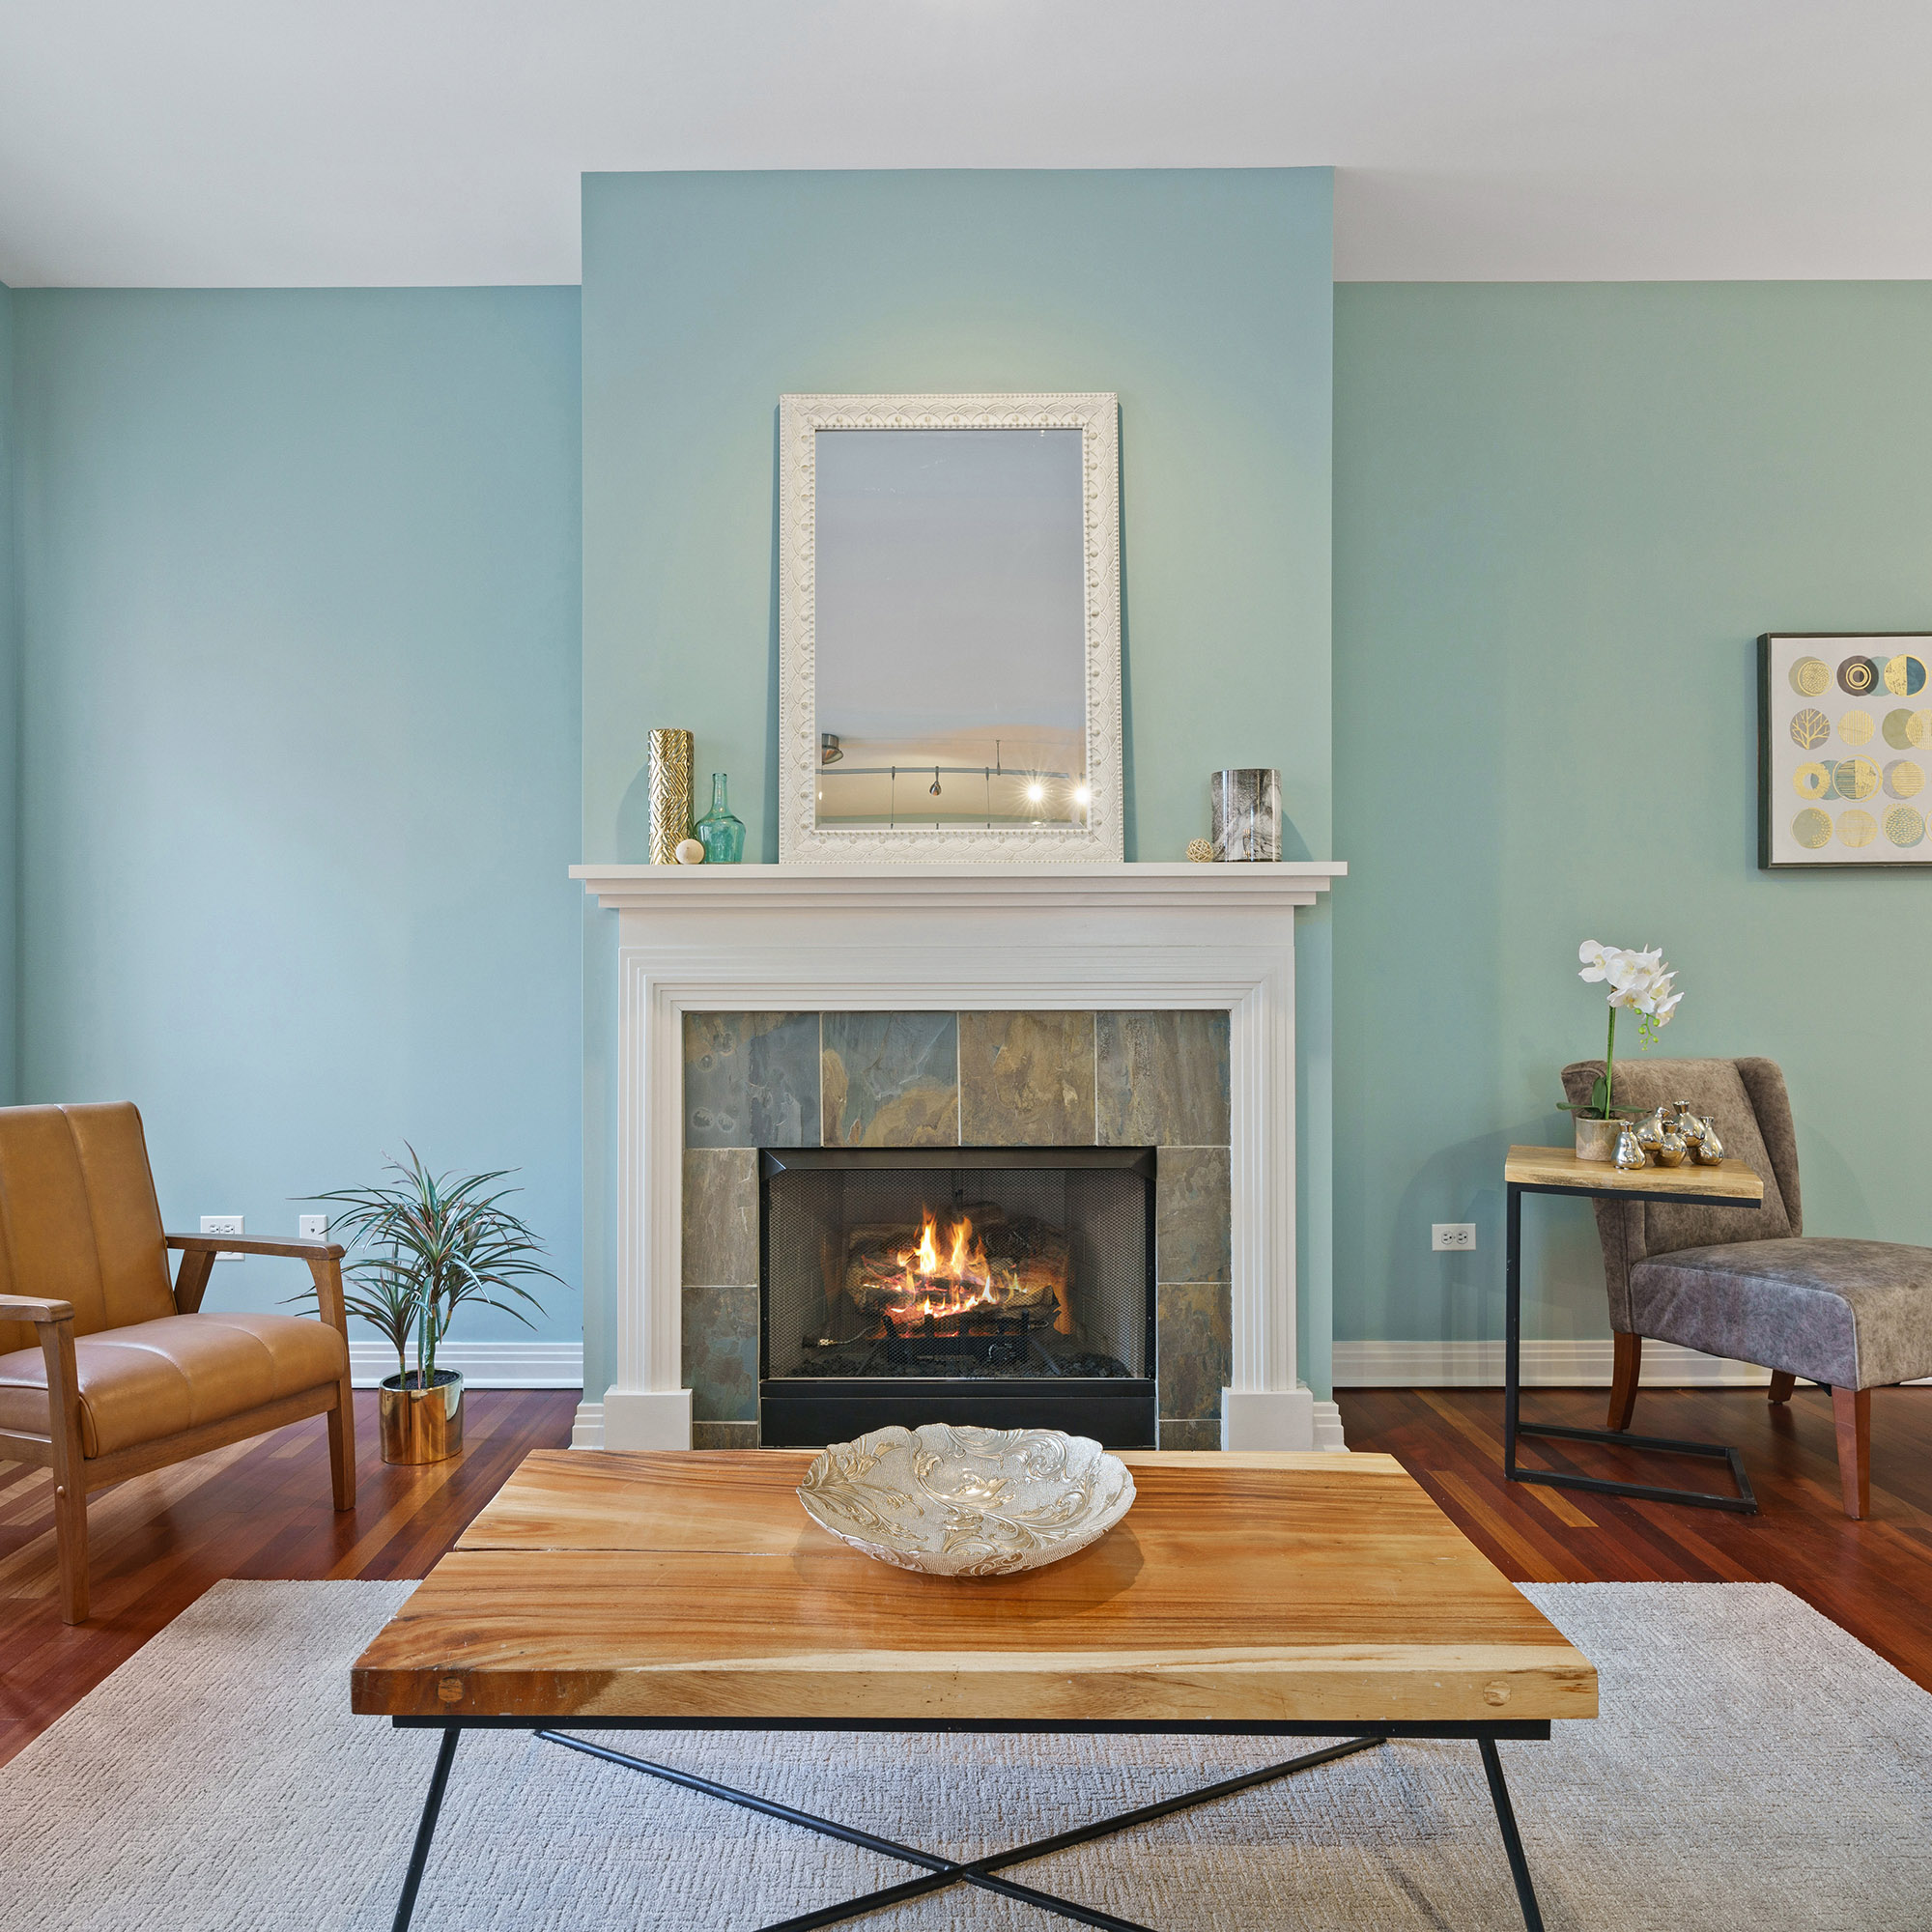 Bright blue wall in a living room, an example of color theory in your home